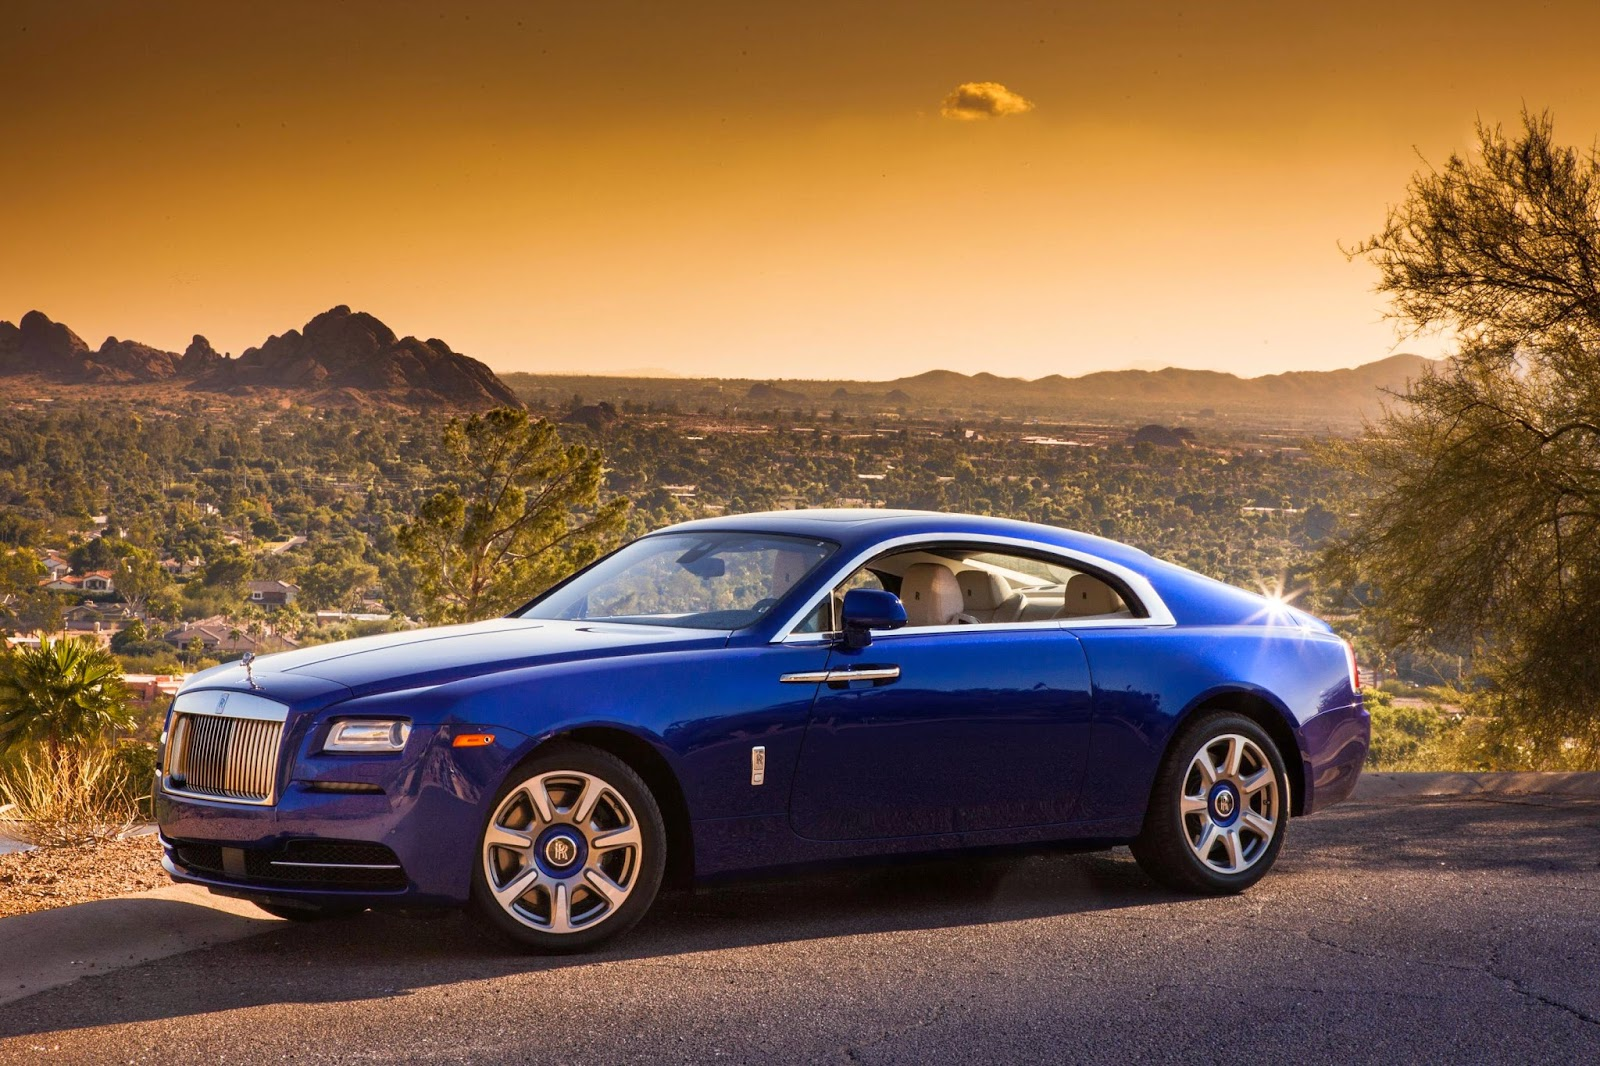 hd rolls royce wraith 2014 wallpaper besthdwallpapers2. Black Bedroom Furniture Sets. Home Design Ideas